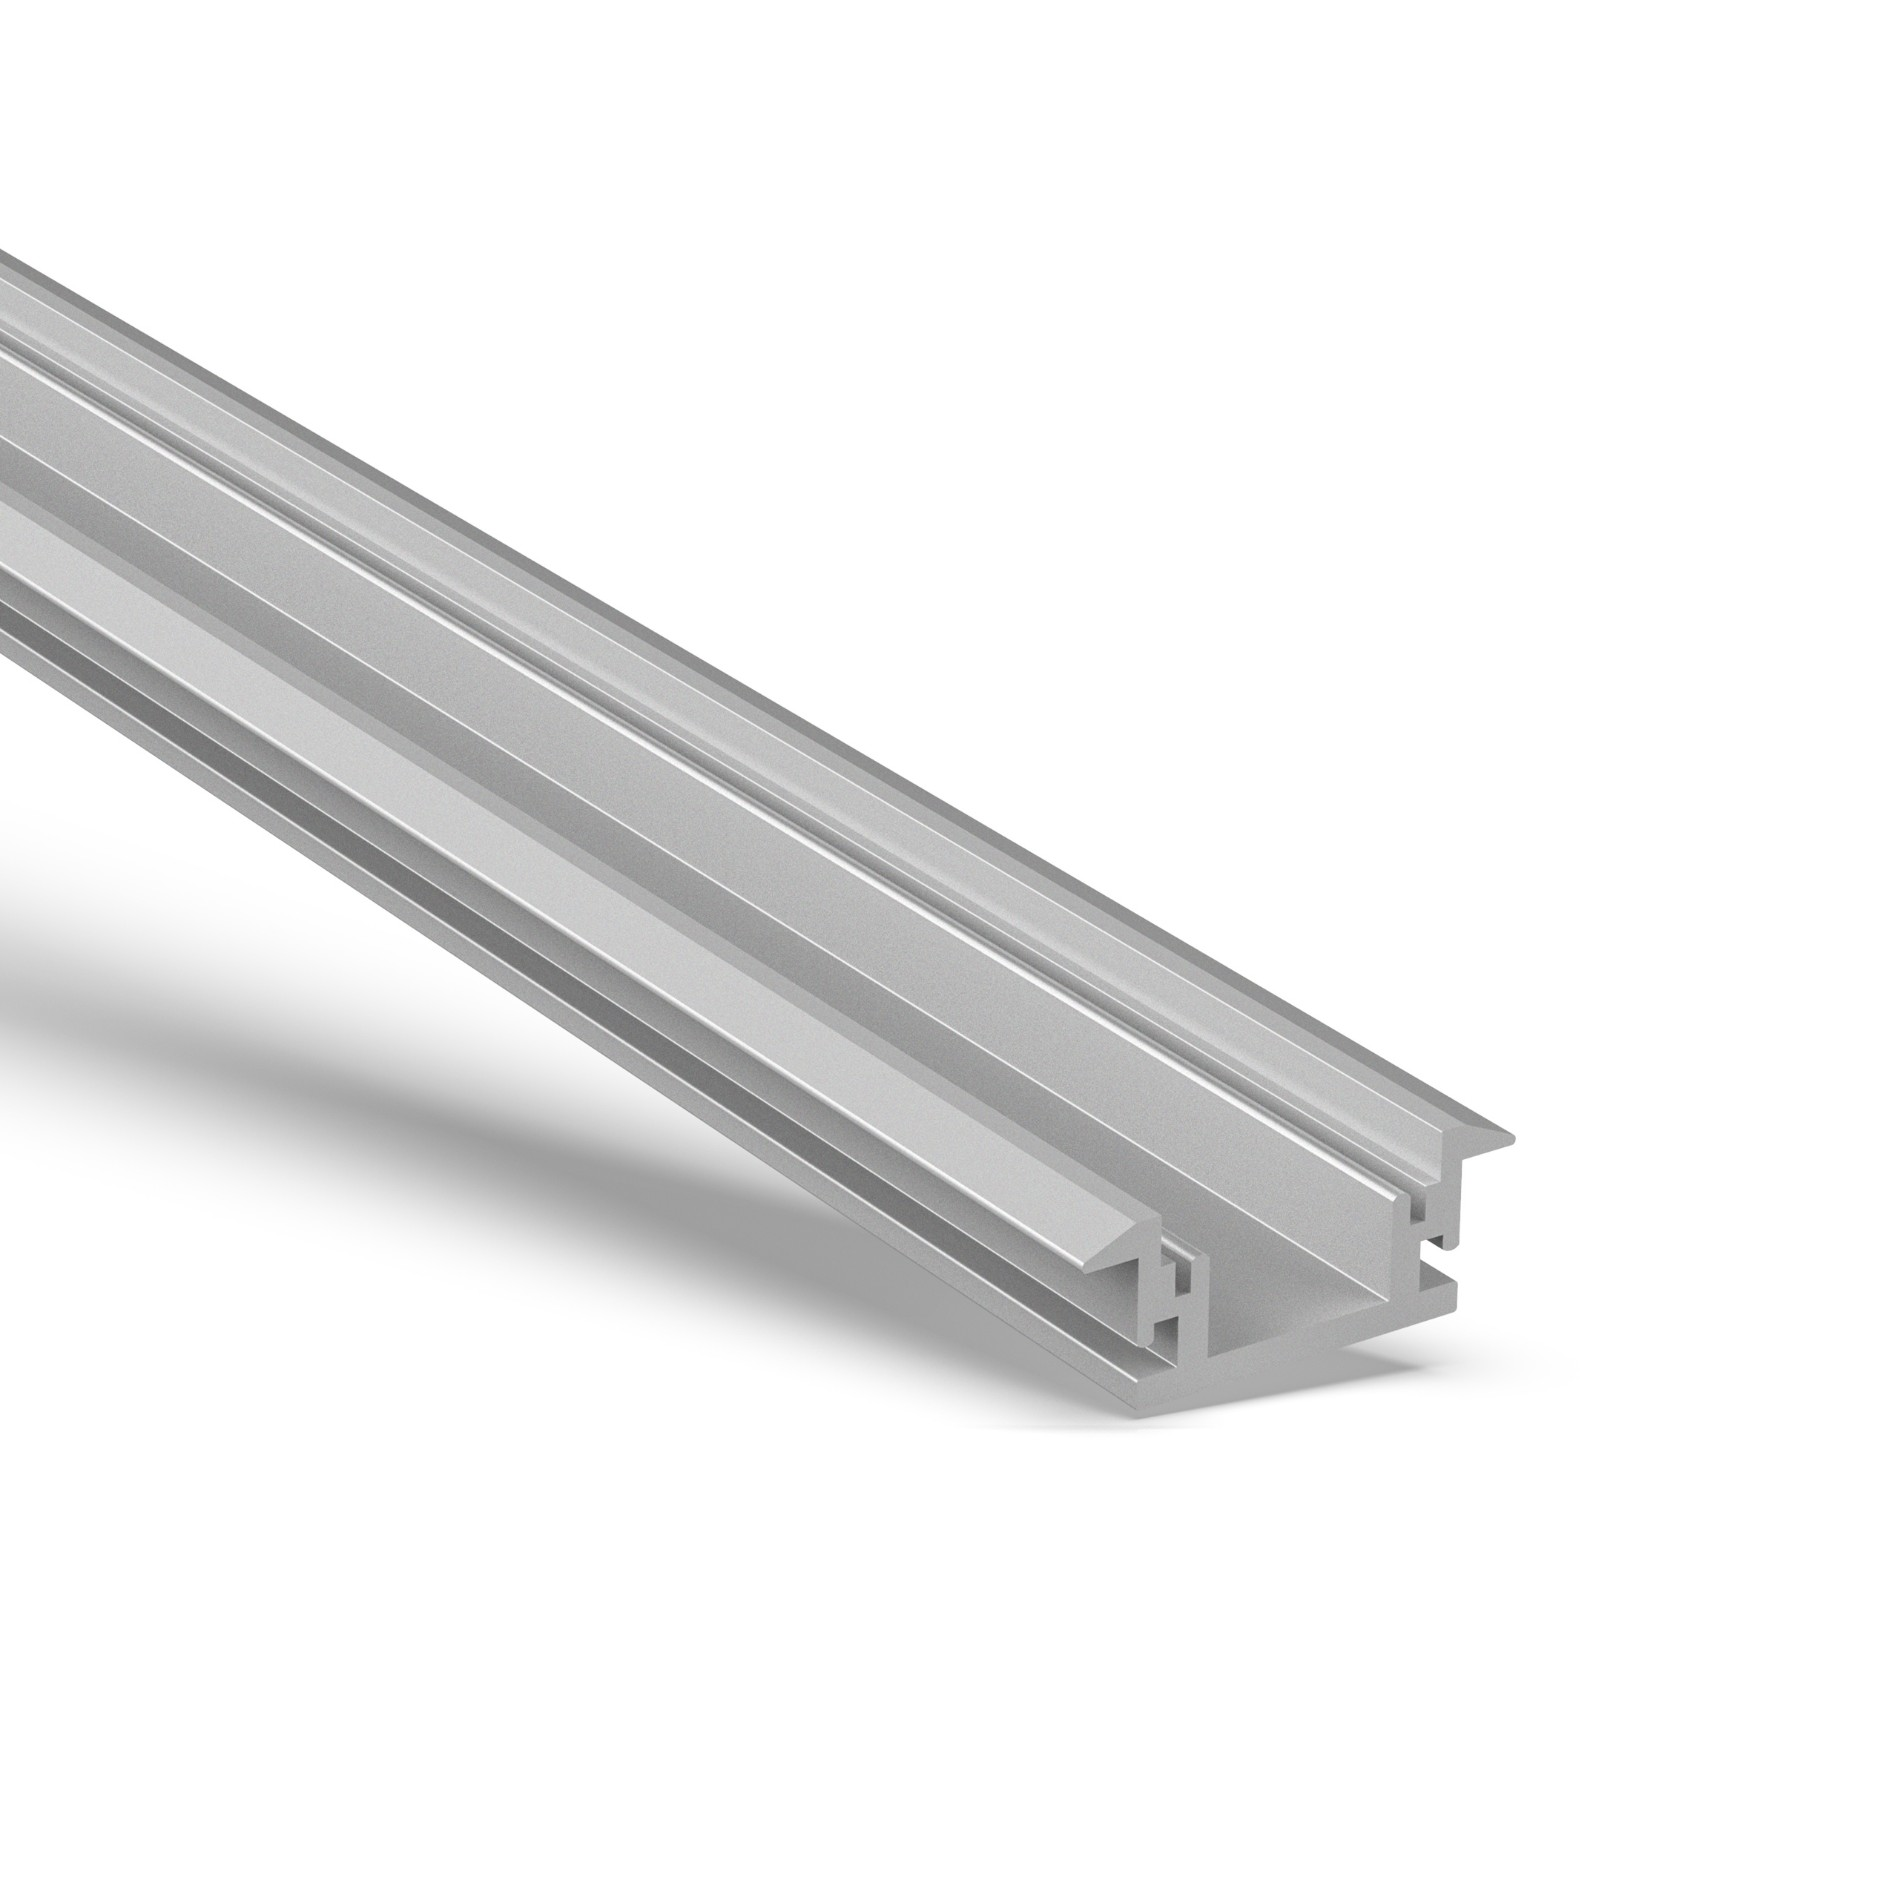 AB IP67 rated floor recessed led mounting profile 28.6x11mm